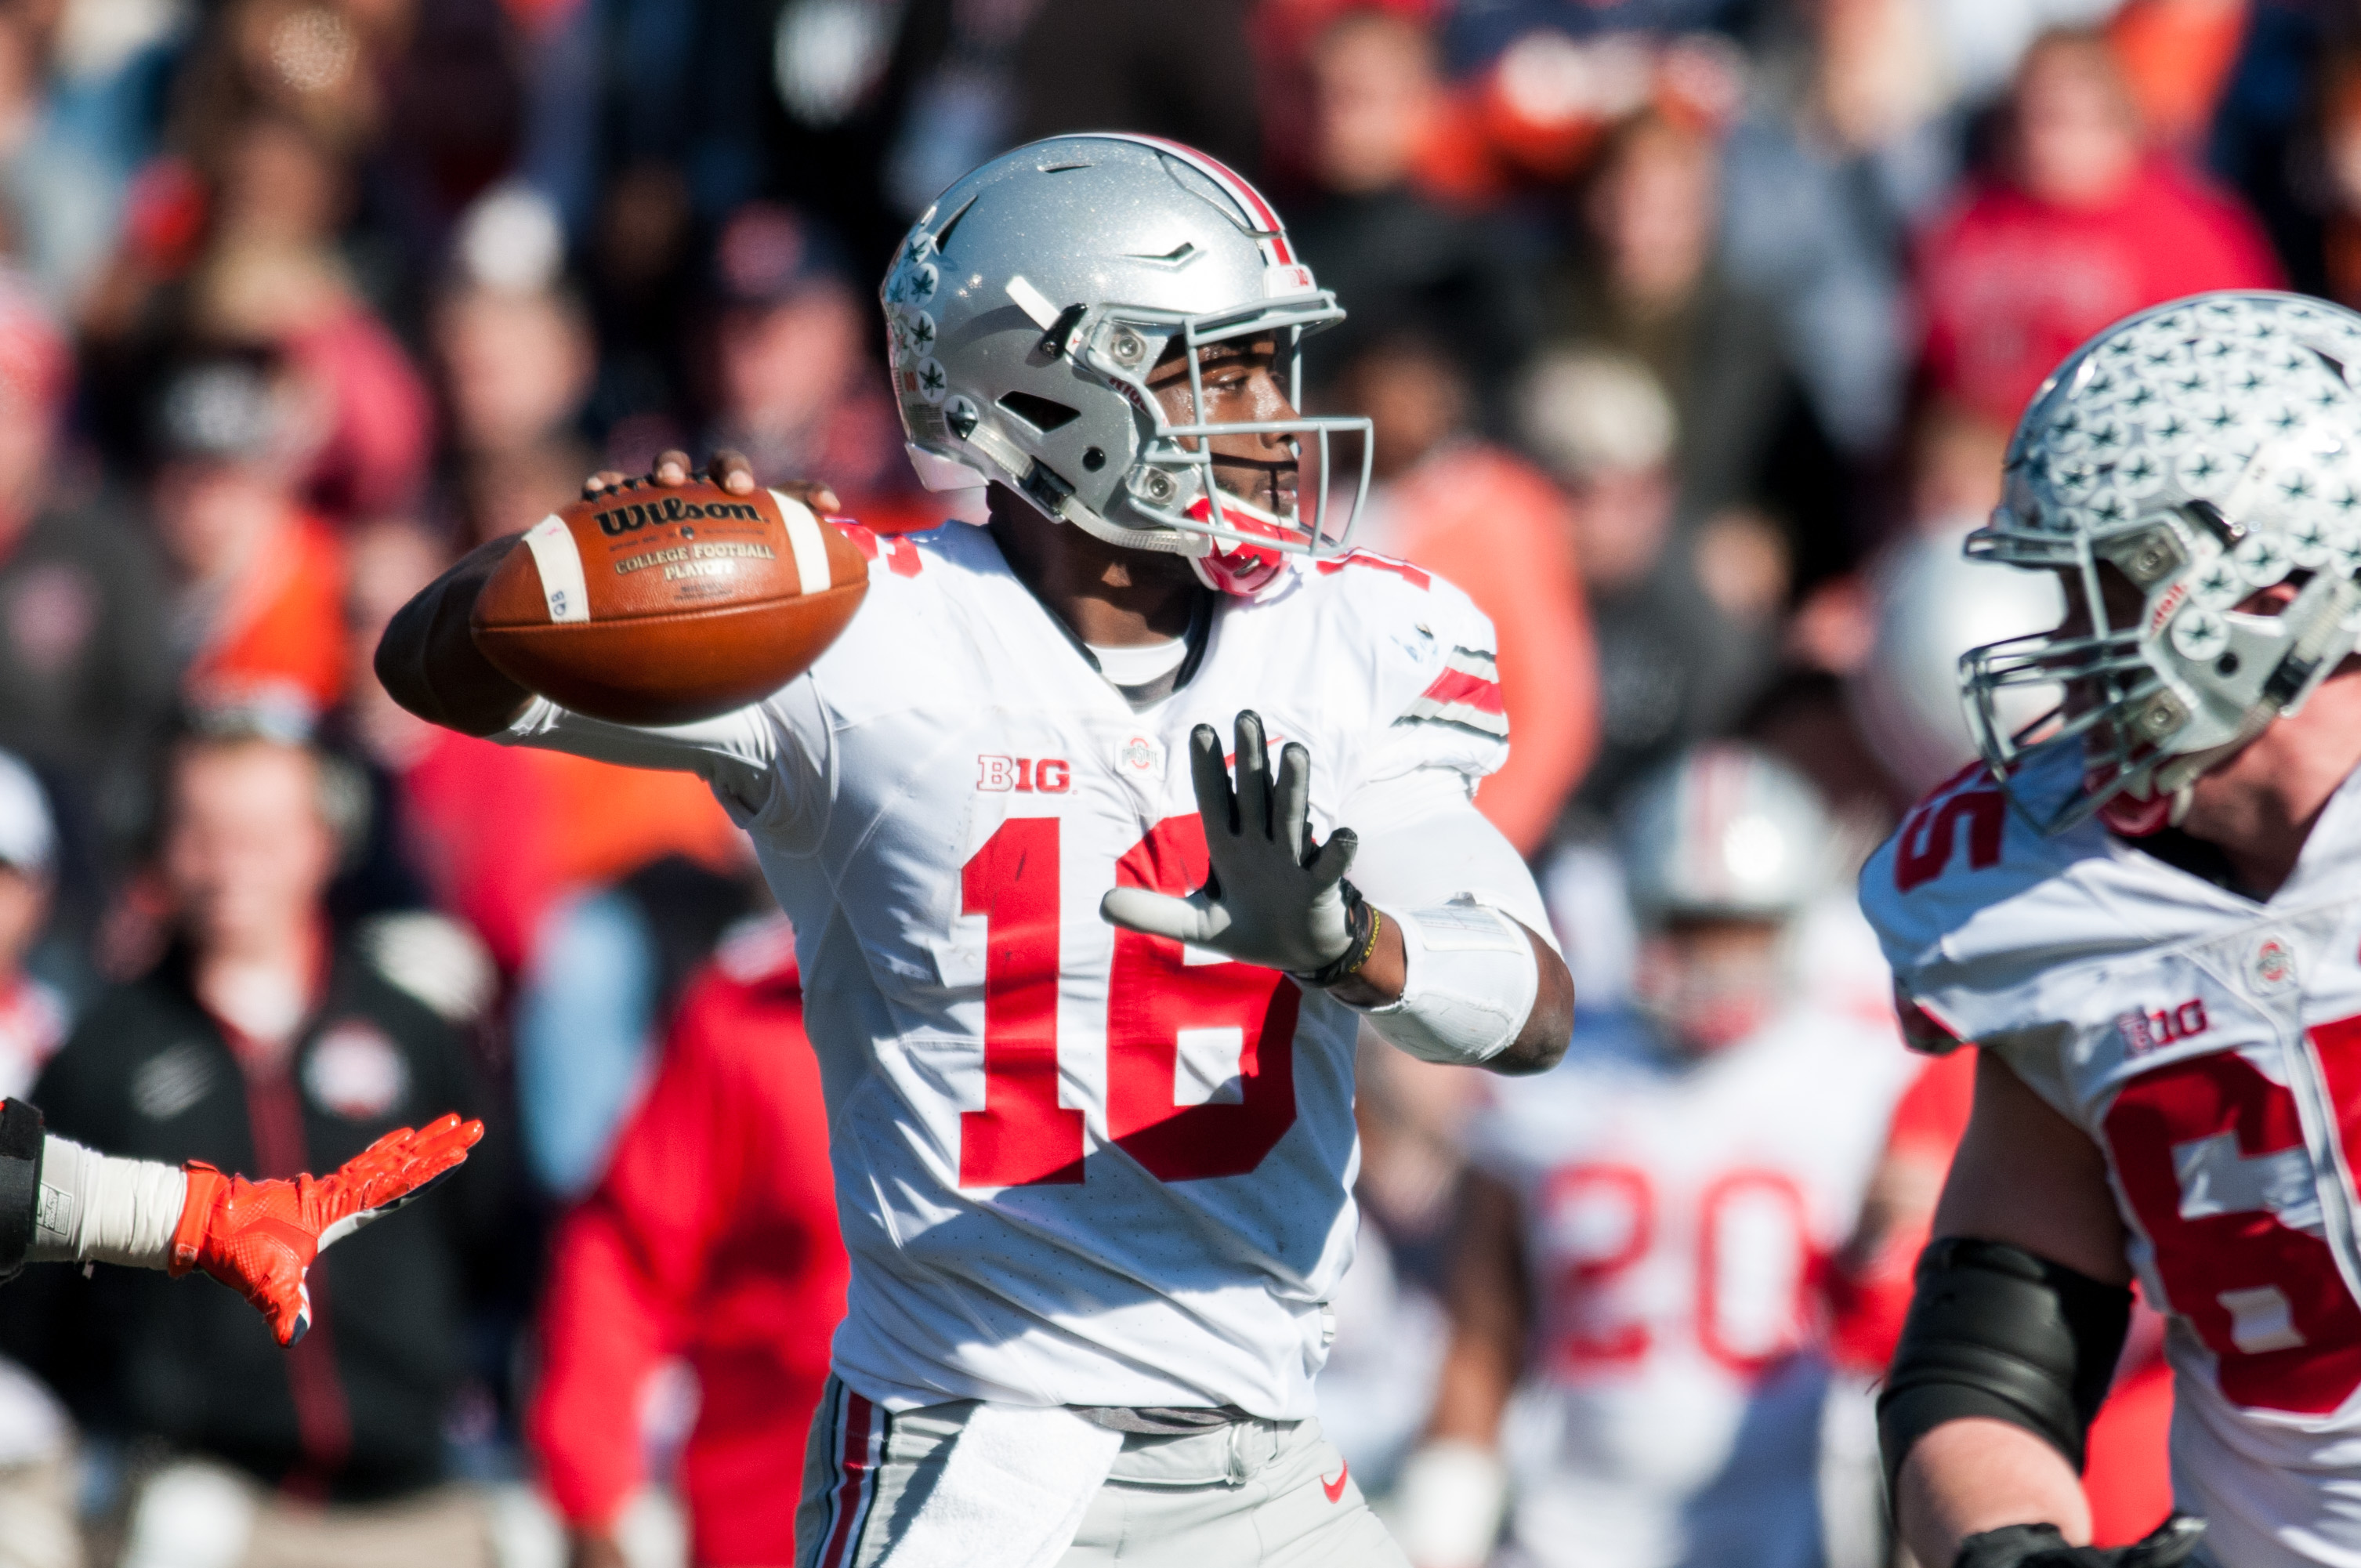 Ohio State quarterback J.T. Barrett (16) throws a pass during the second quarter of an NCAA college football game against Illinois, Saturday, Nov. 14, 2015, at Memorial Stadium in Champaign, Ill.  (AP Photo/Bradley Leeb)